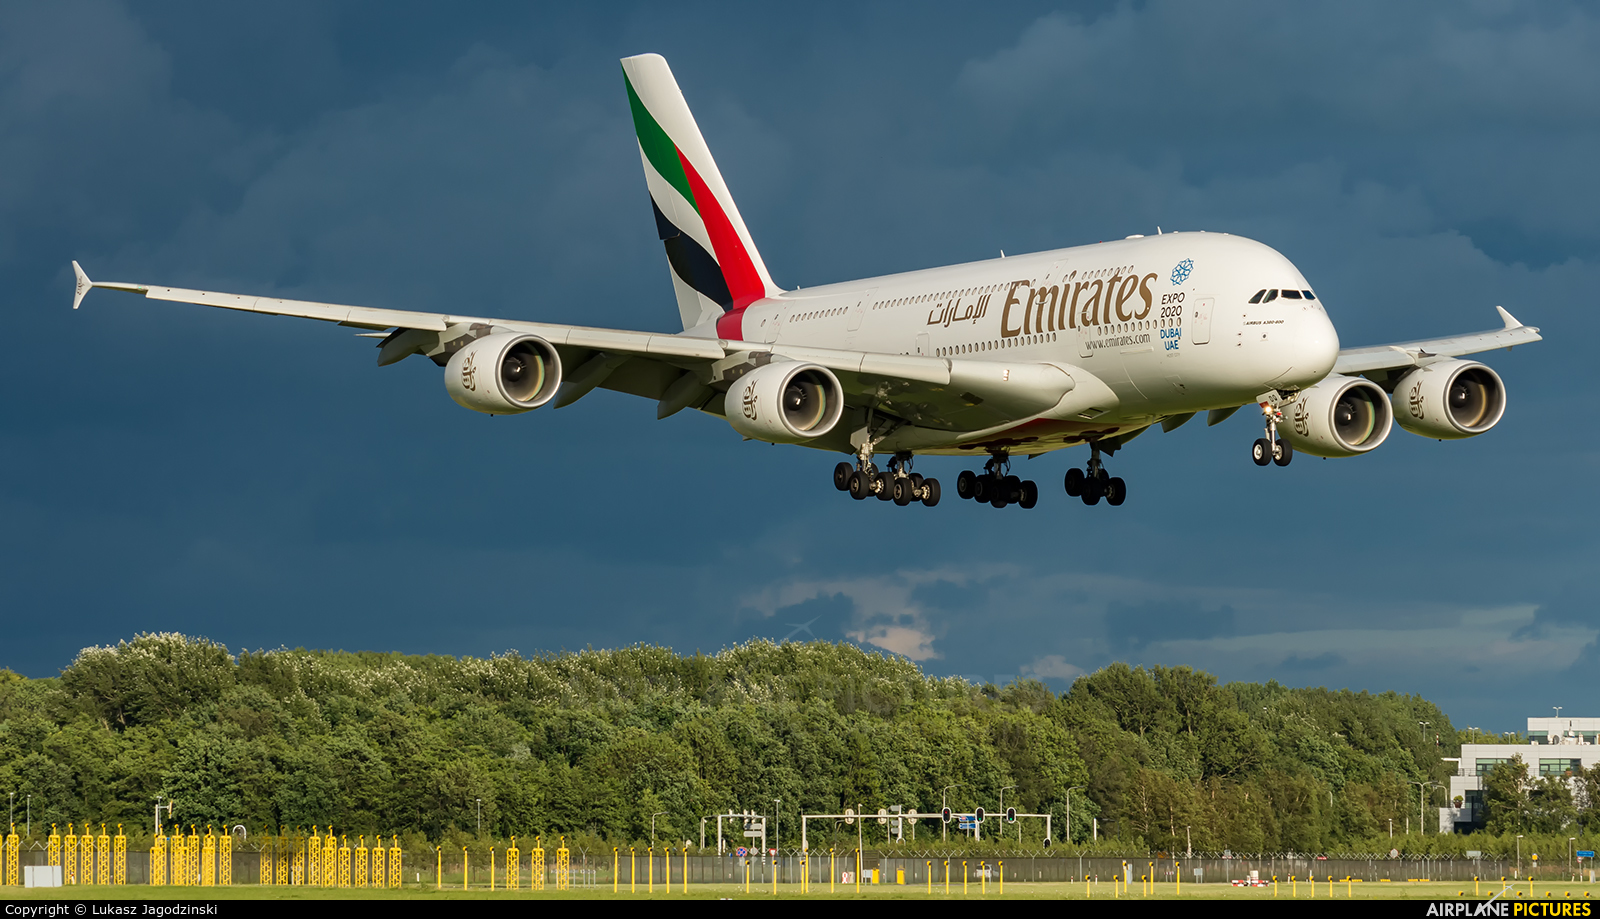 Emirates Airlines A6-EDQ aircraft at Amsterdam - Schiphol